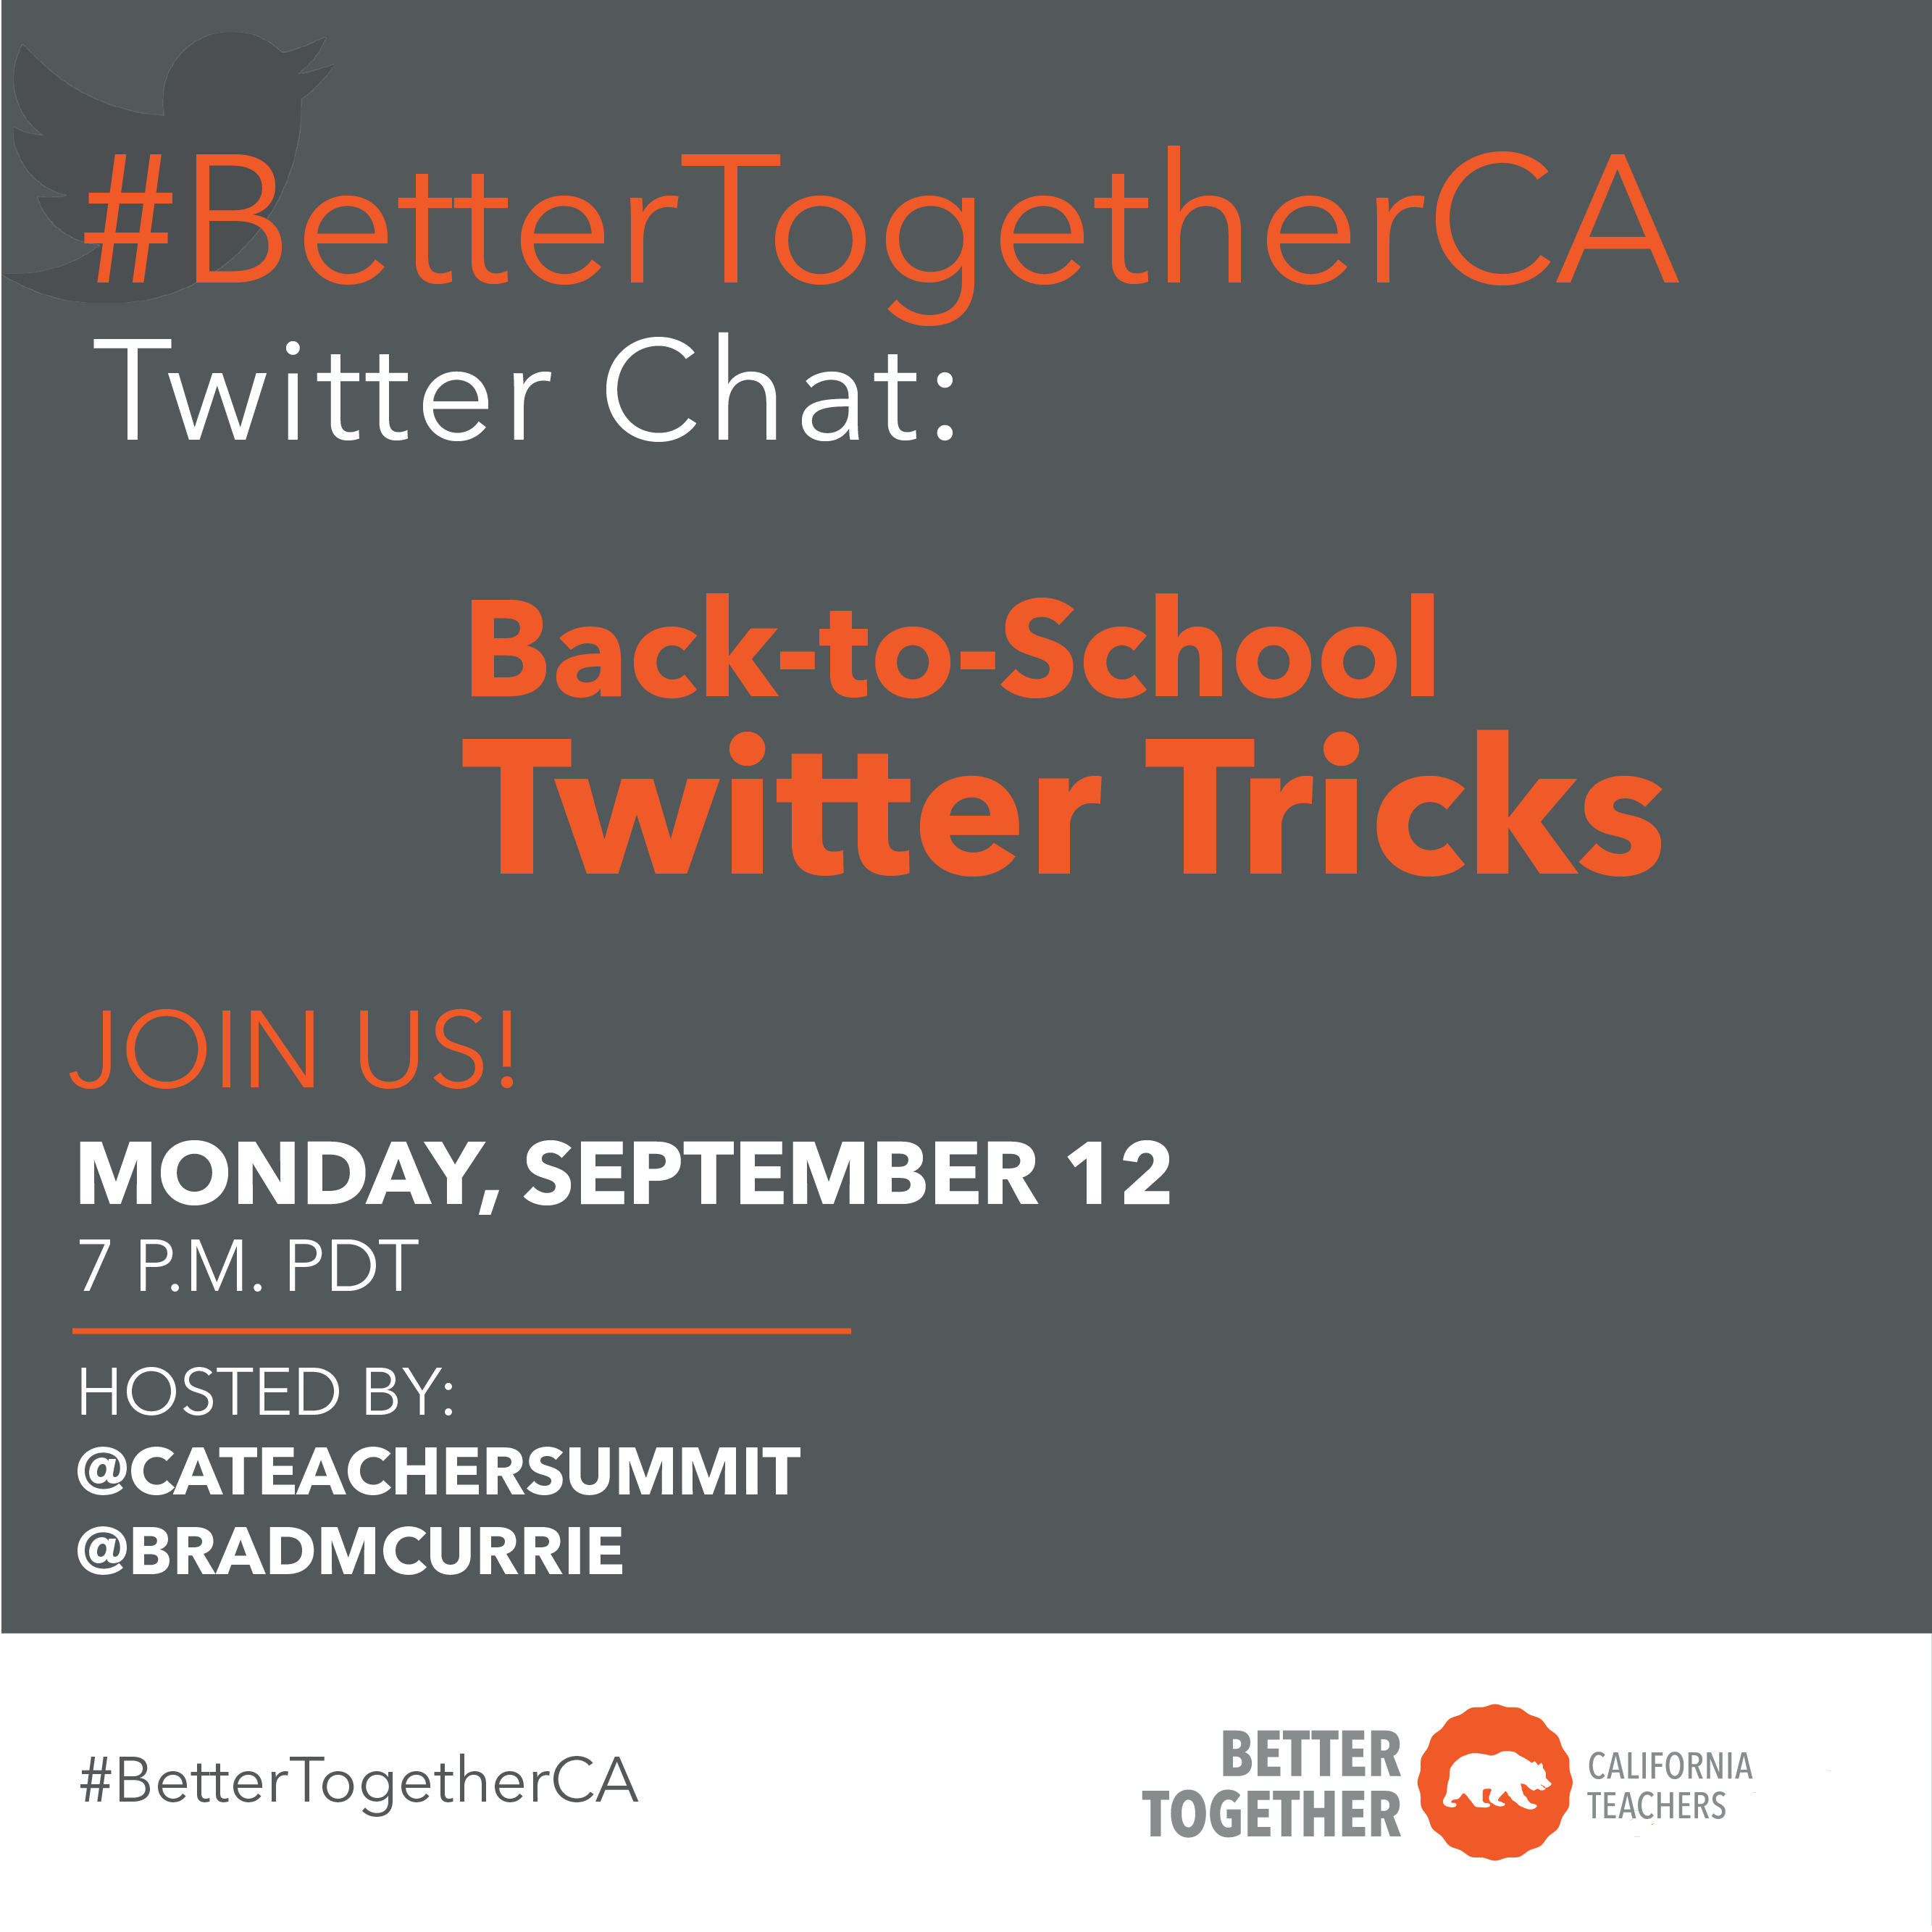 #BetterTogetherCA Twitter Chat